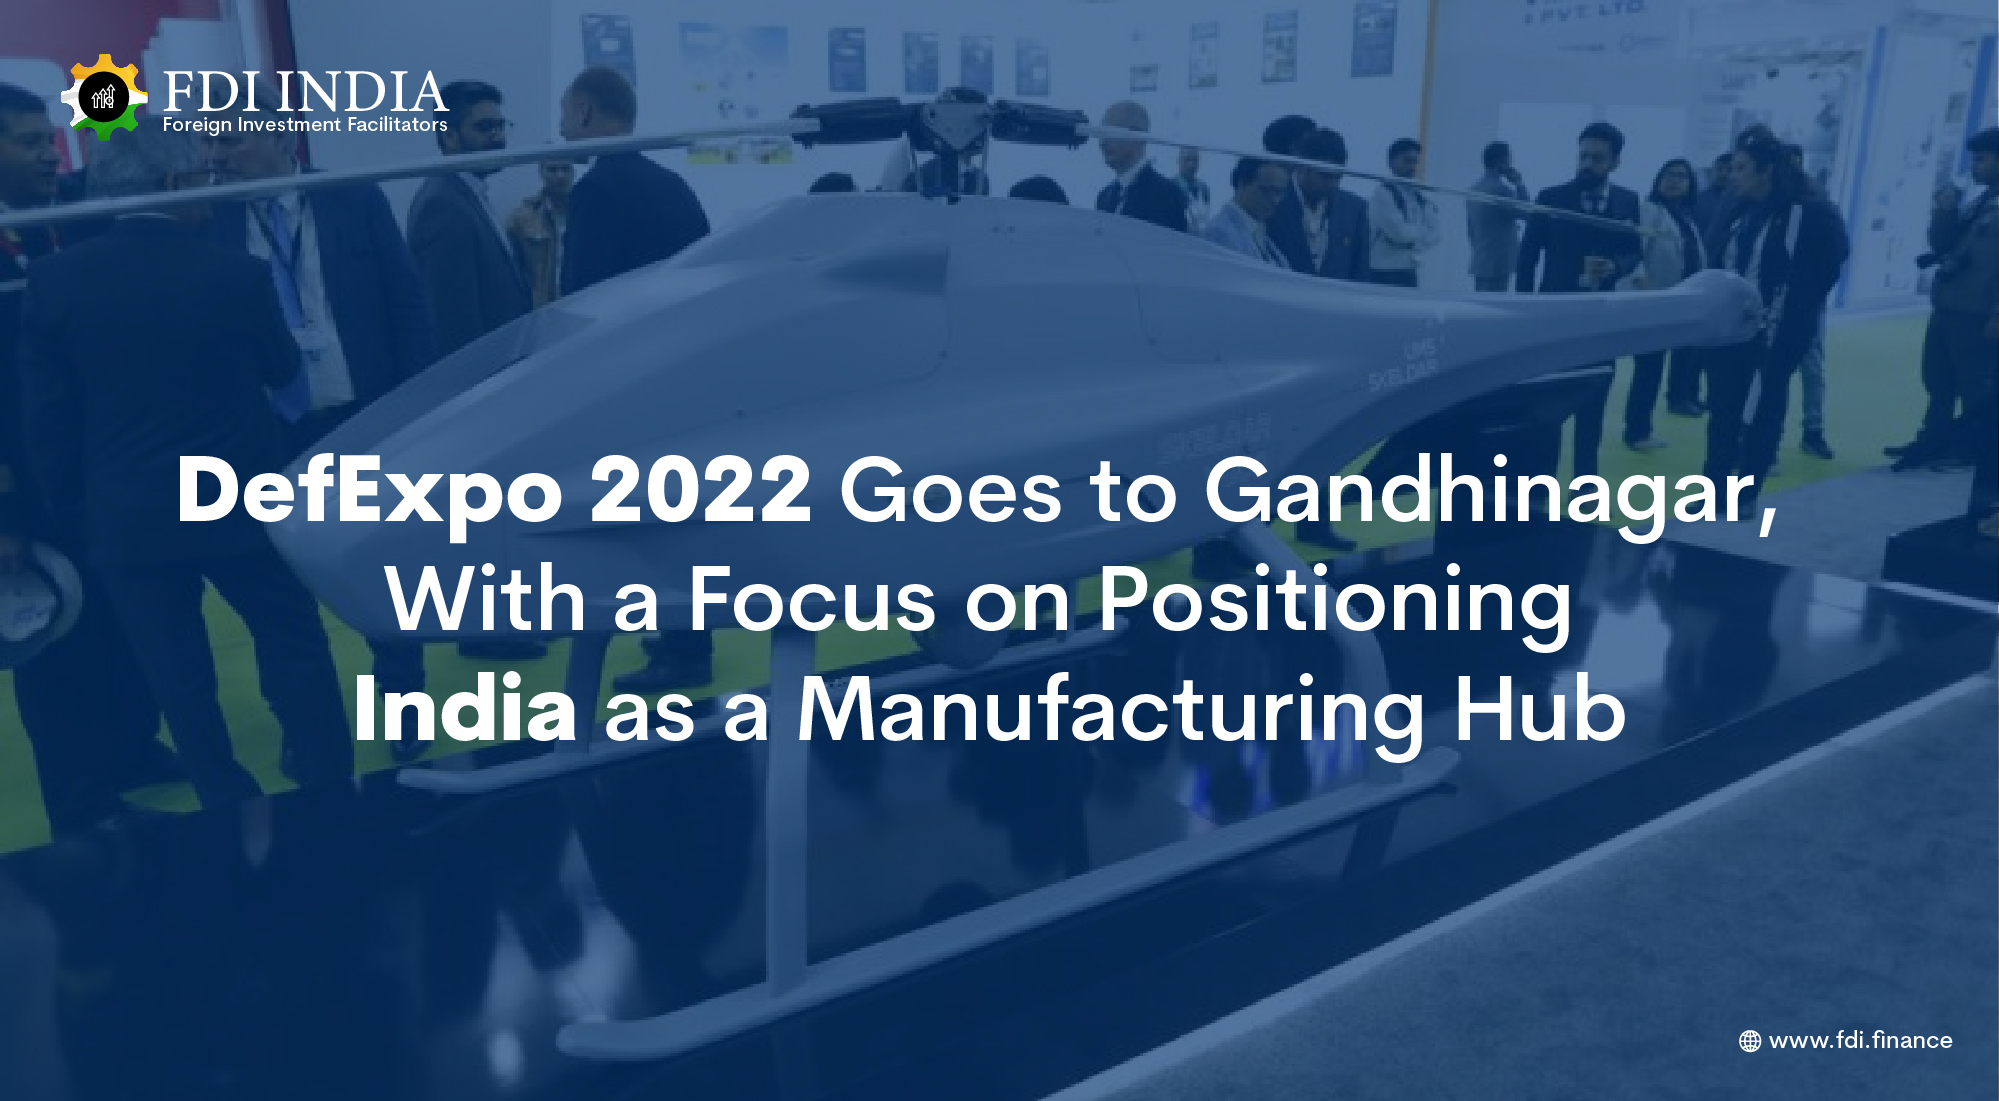 DefExpo 2022 Goes to Gandhinagar, With a Focus on Positioning India as a Manufacturing Hub